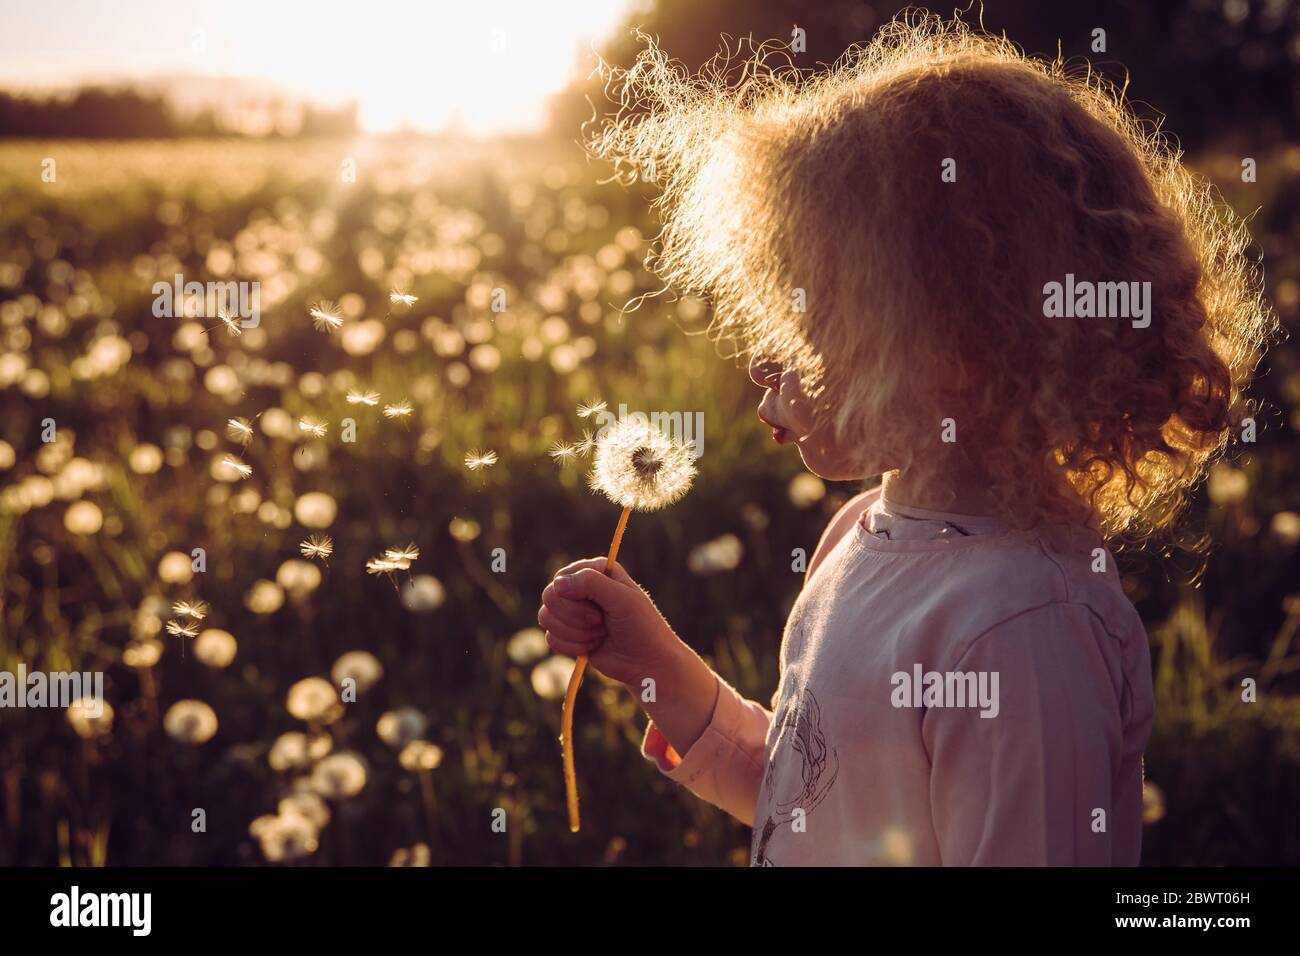 Selective focus cute blonde curly hair girl blowing blossomed dandelion flower head, seedlings fly away, positive bright sunset in rural countryside. Stock Photo